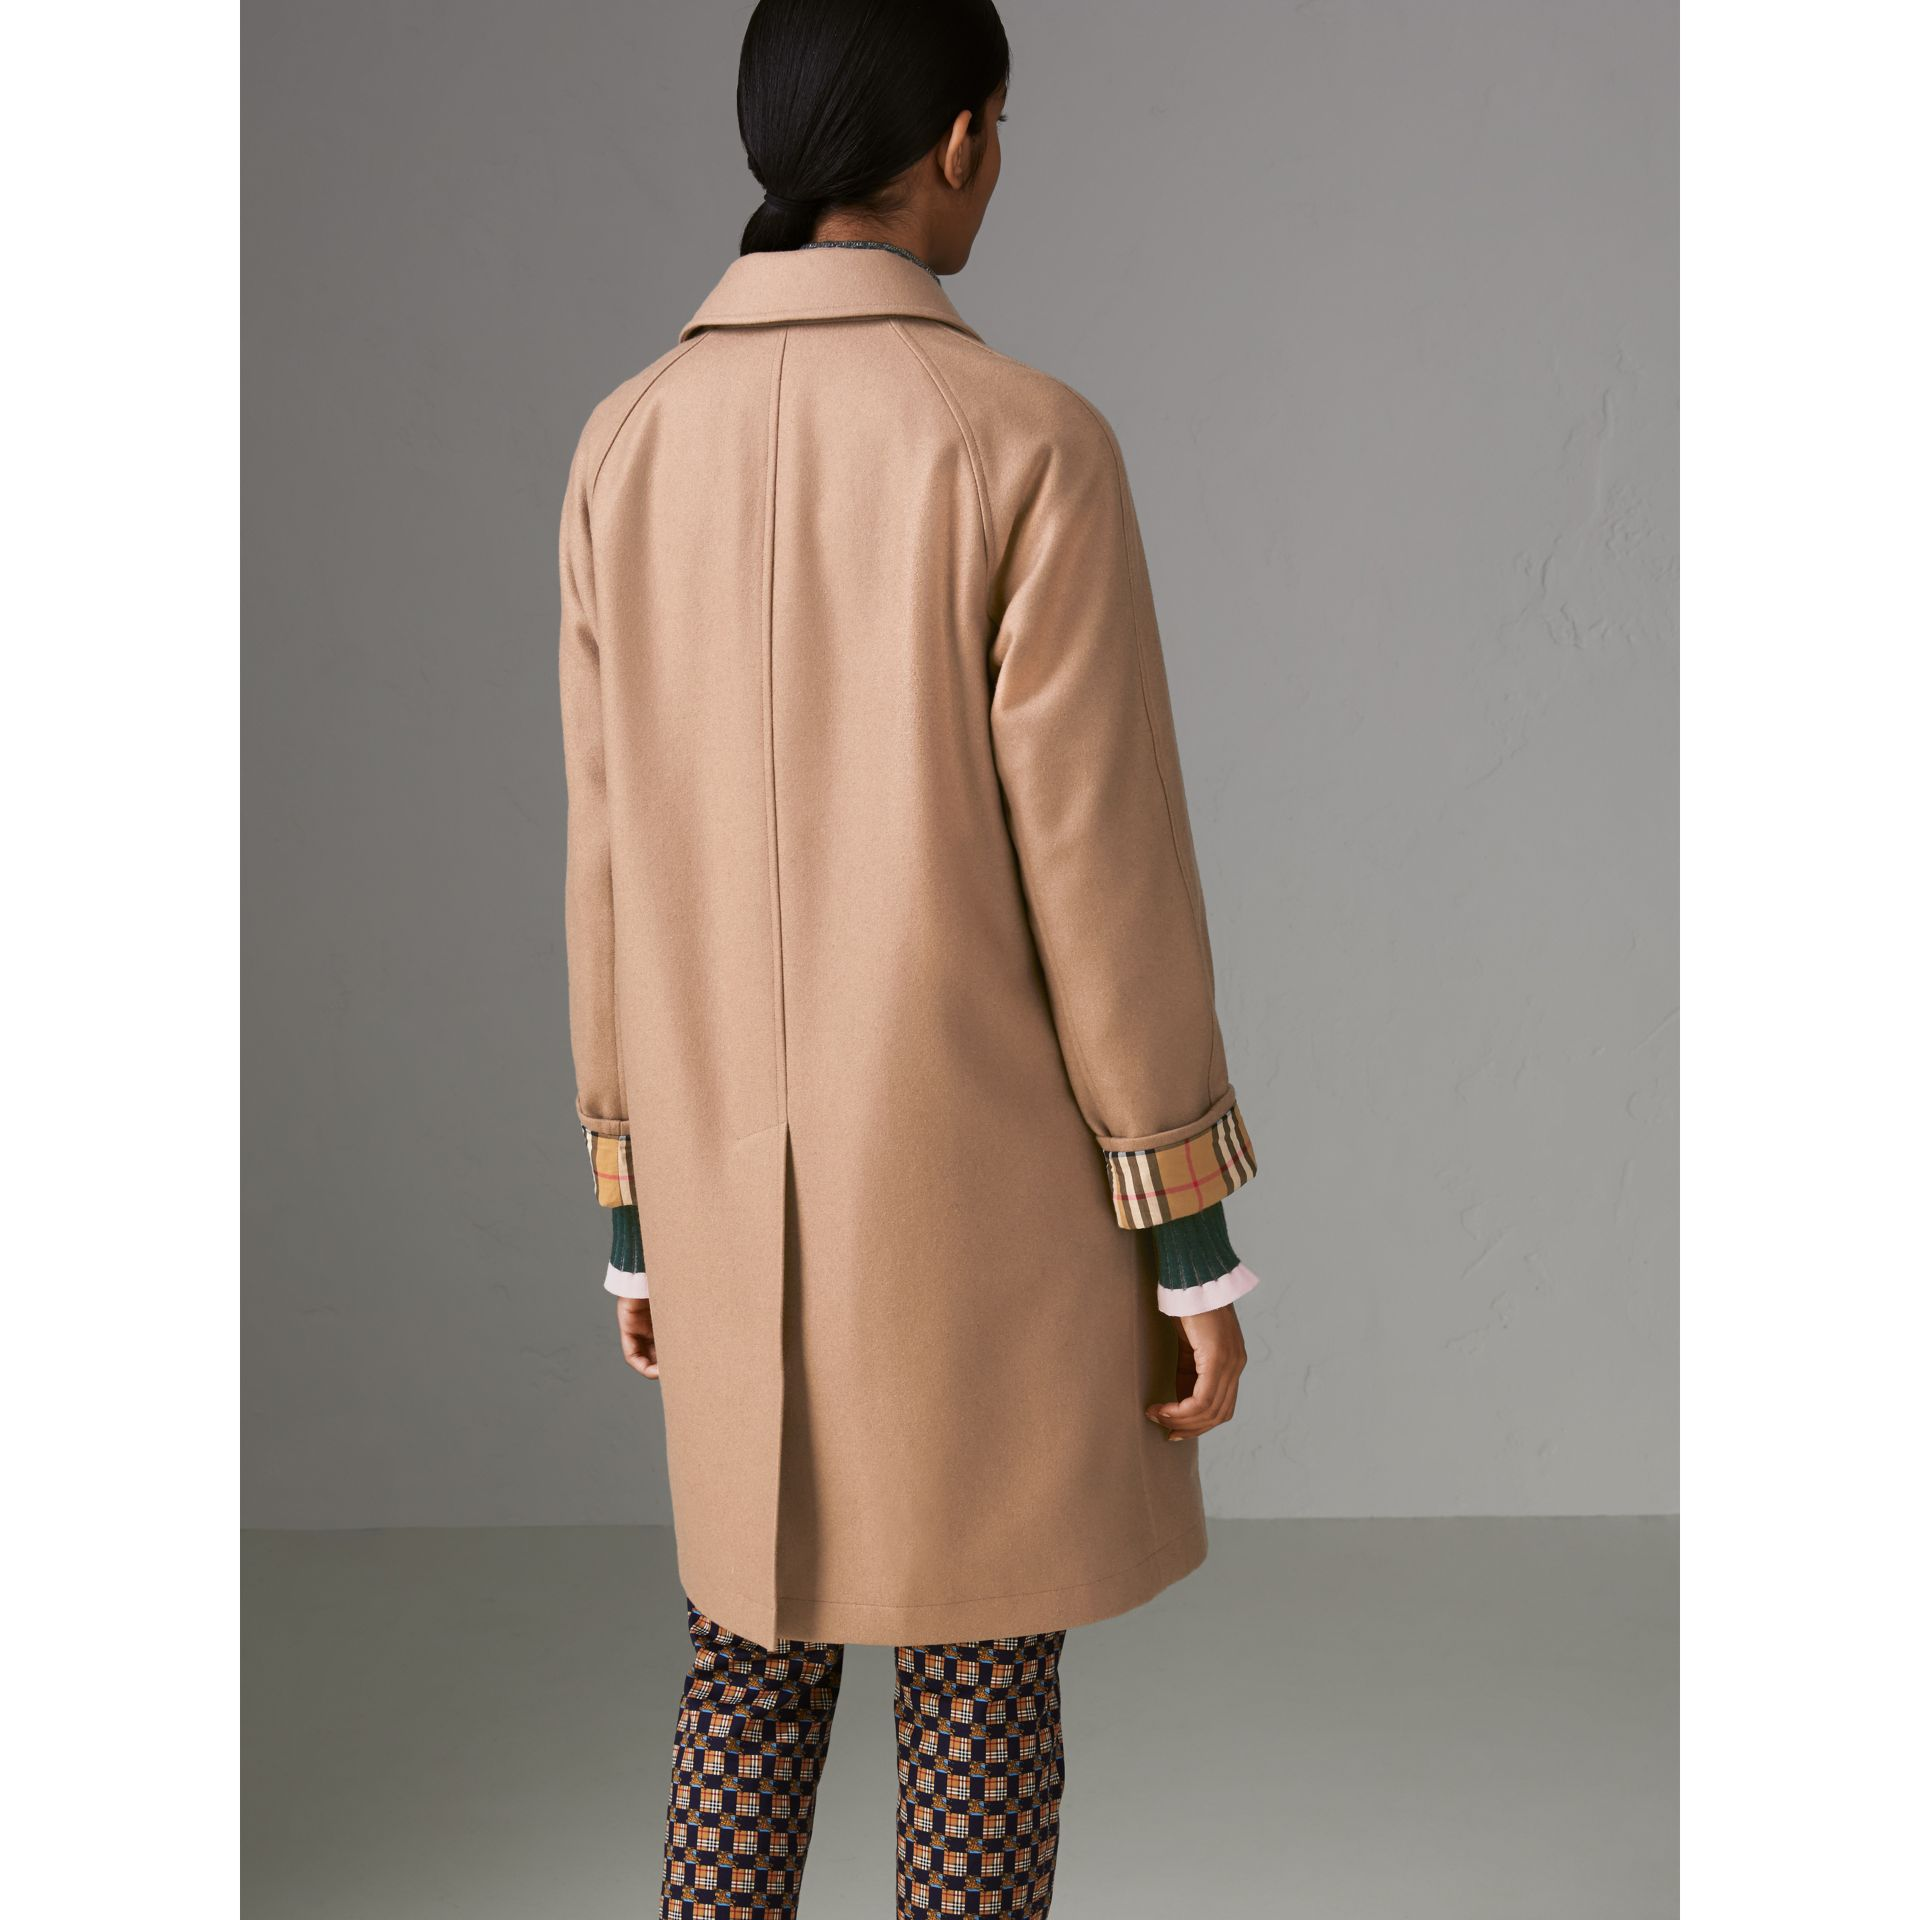 Cashmere Car Coat in Camel - Women | Burberry - gallery image 2